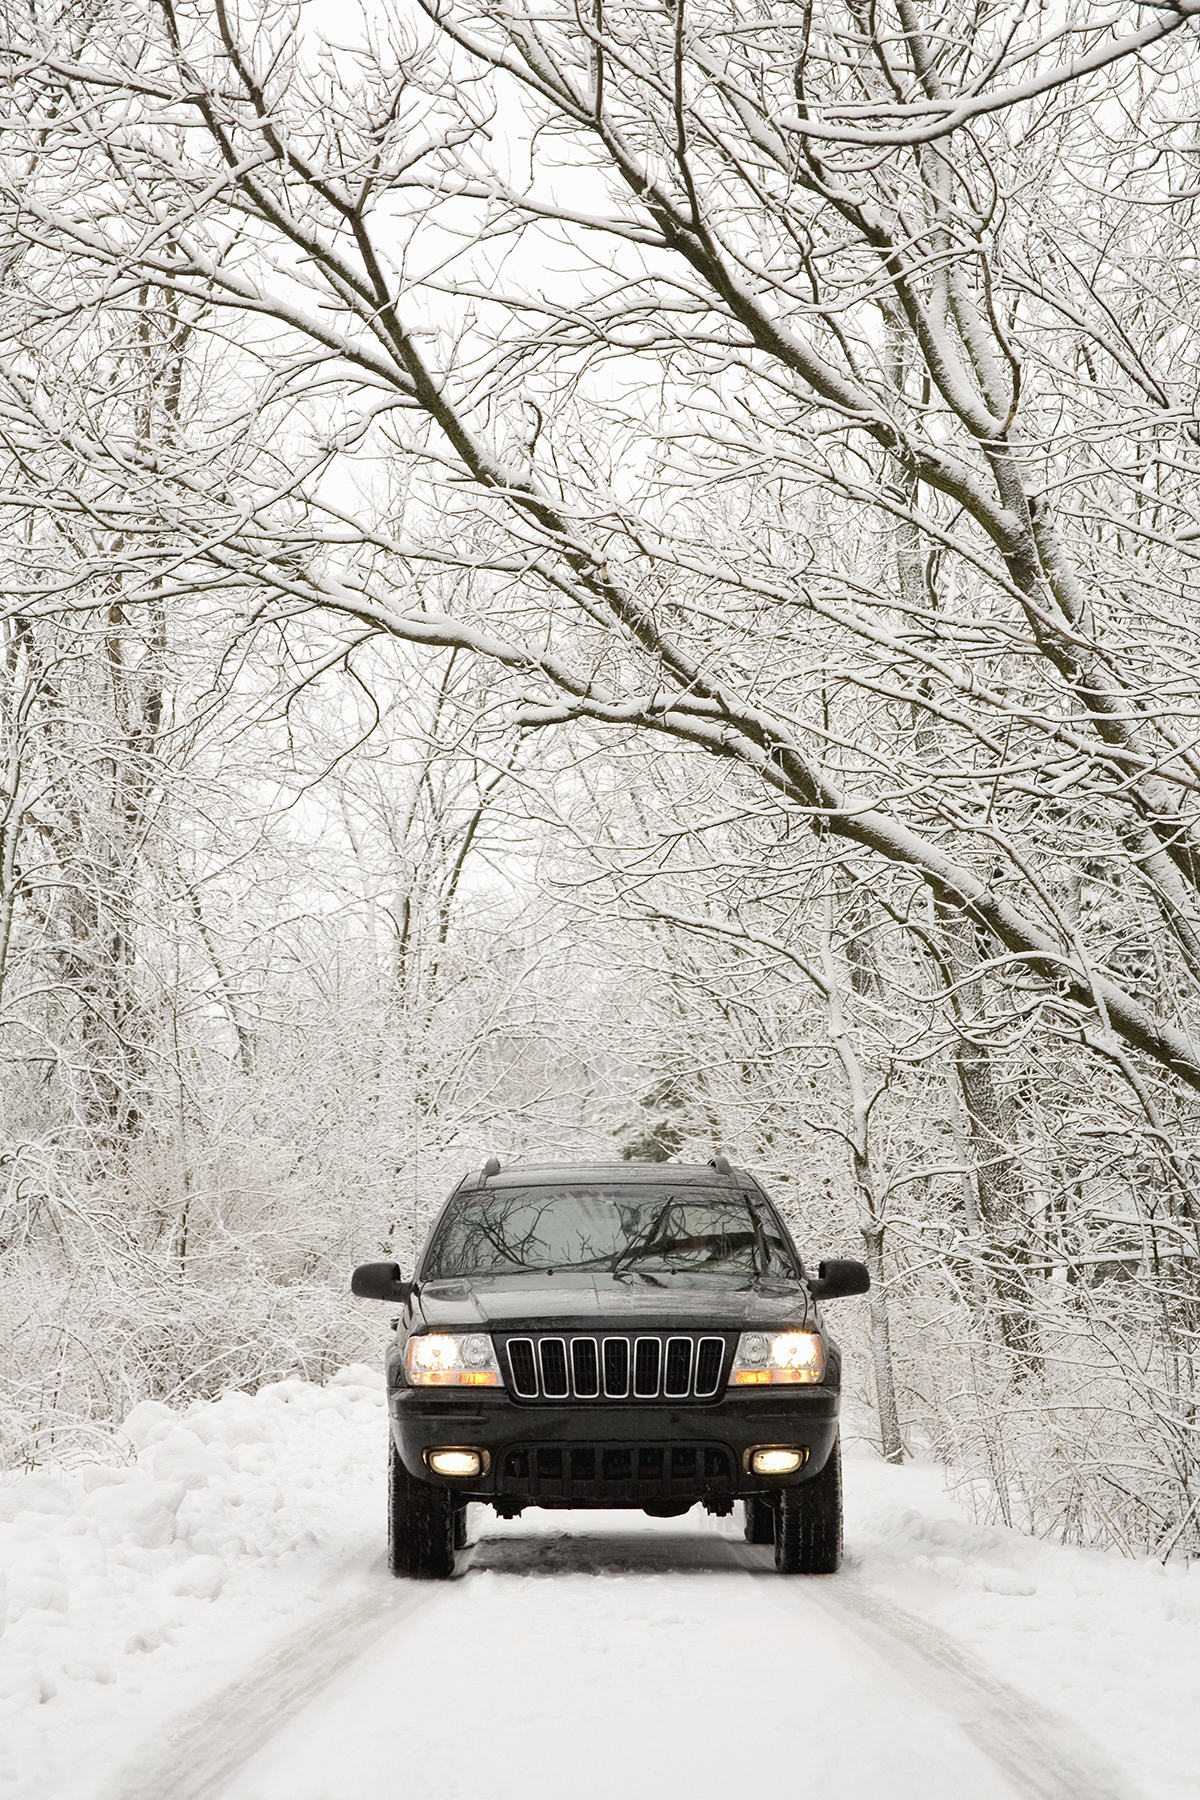 safe driving tips for bad weather - real simple